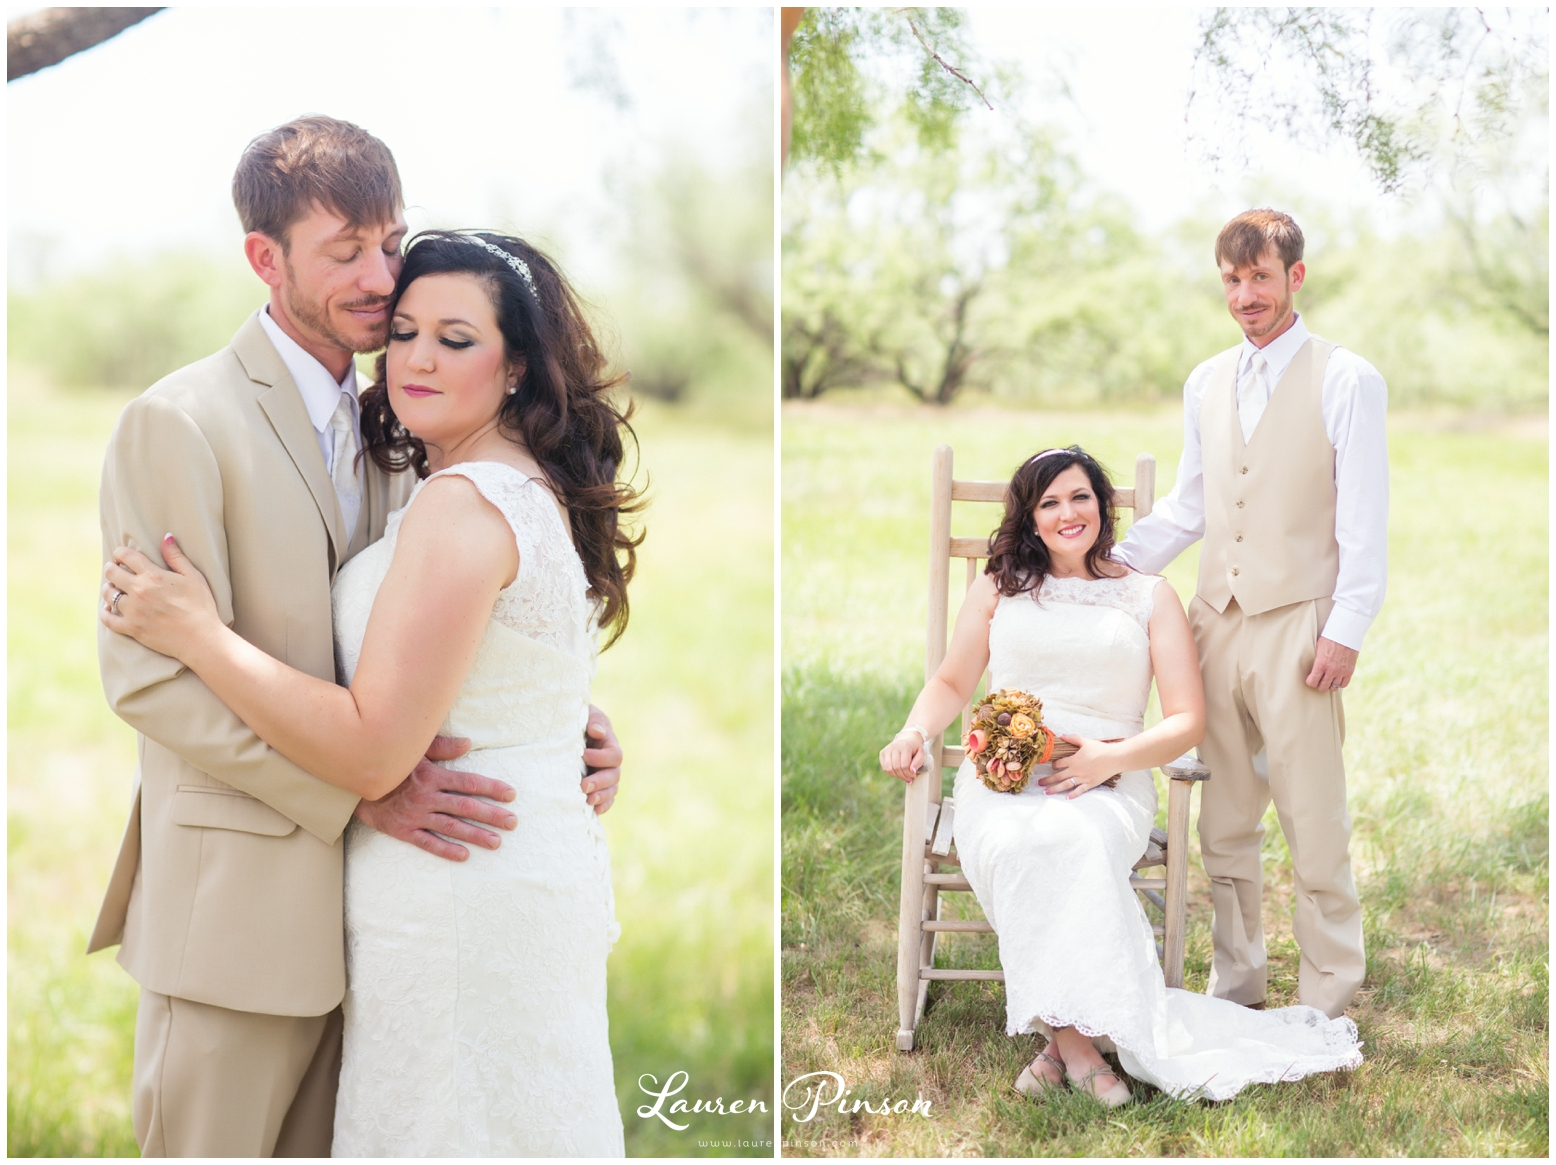 wichita-falls-coyote-ranch-resort-wedding-texas-photography-family-ceremony-balloons-rustic-lace_0326.jpg